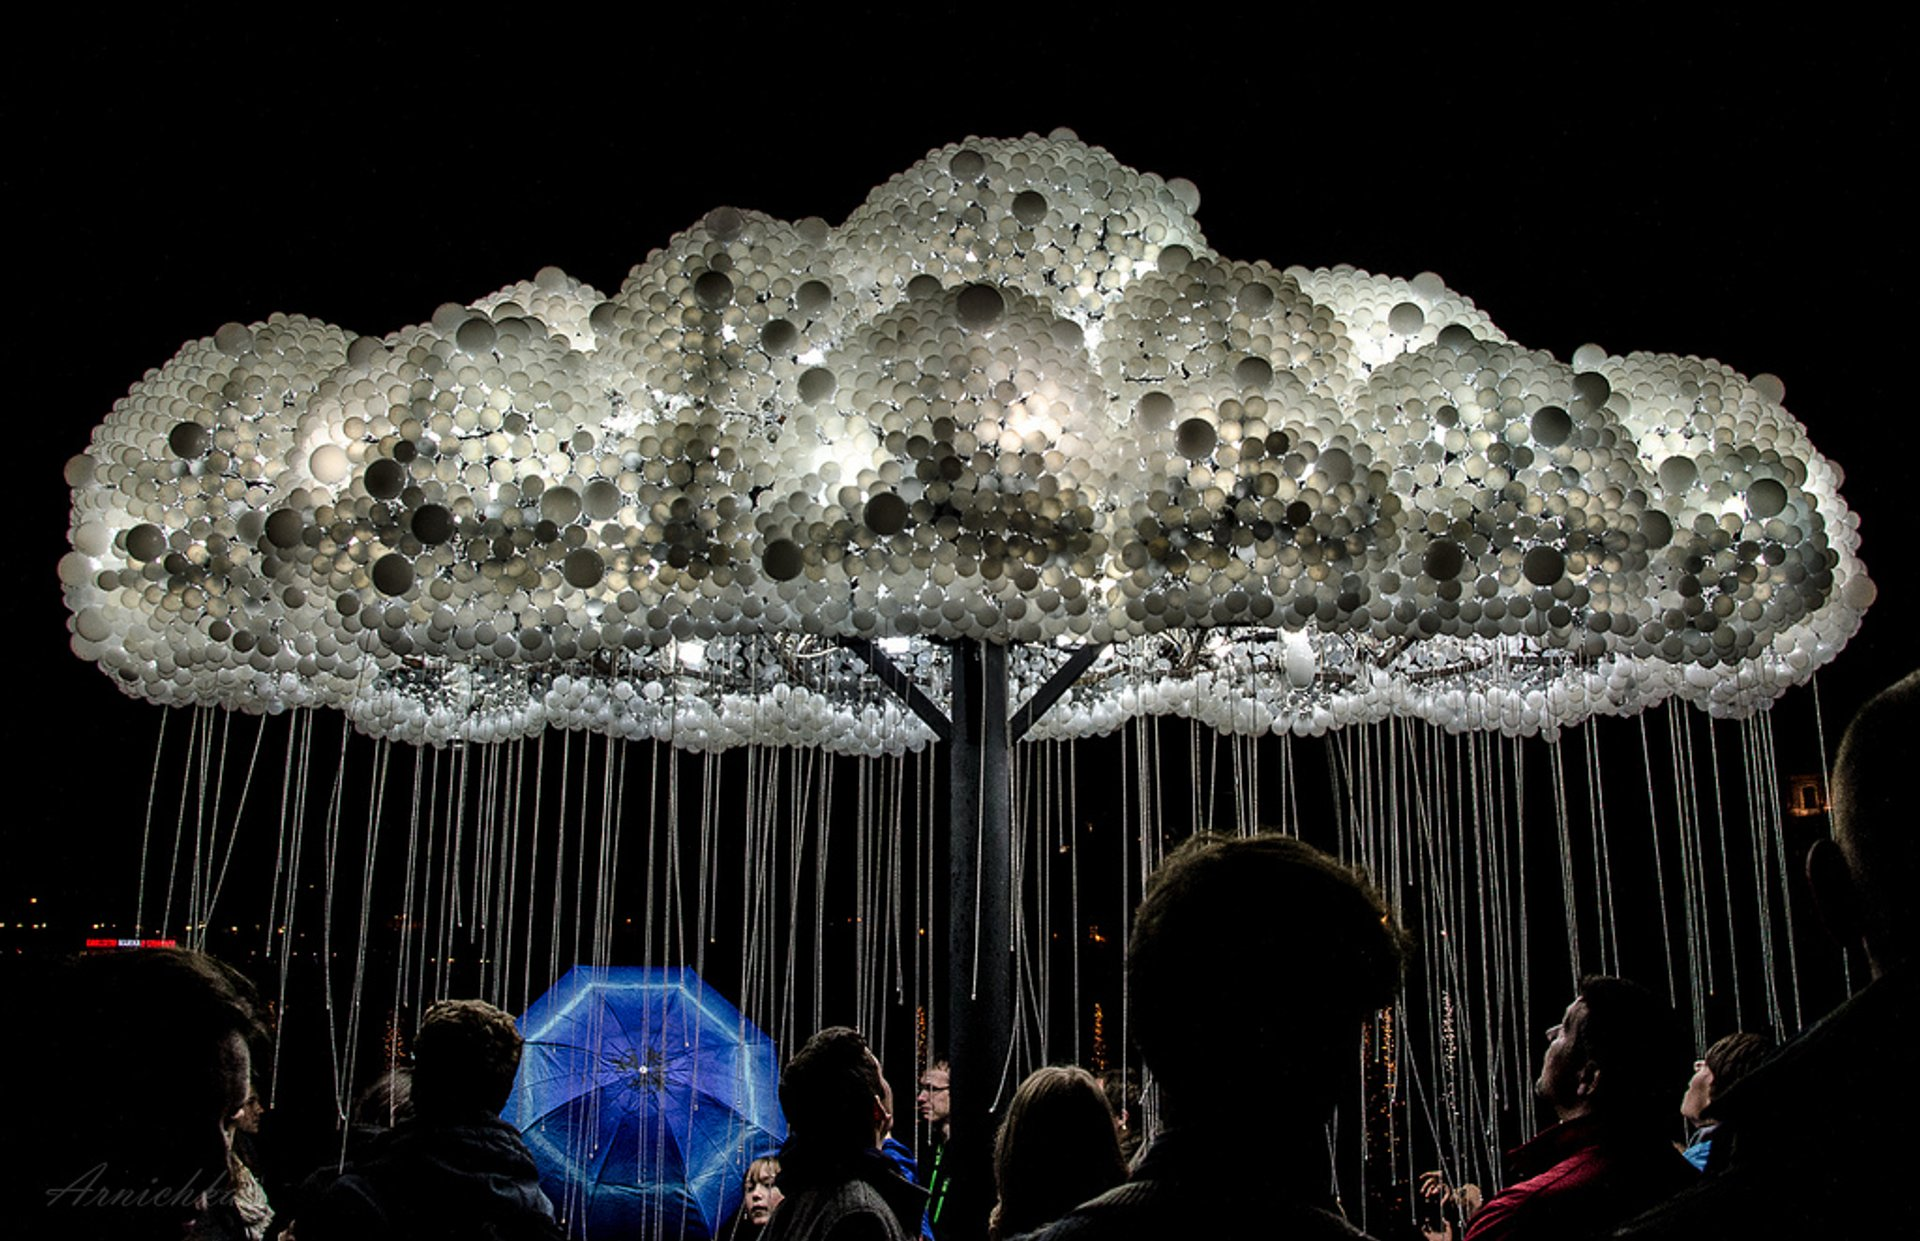 Umbrella under the cloud 2020